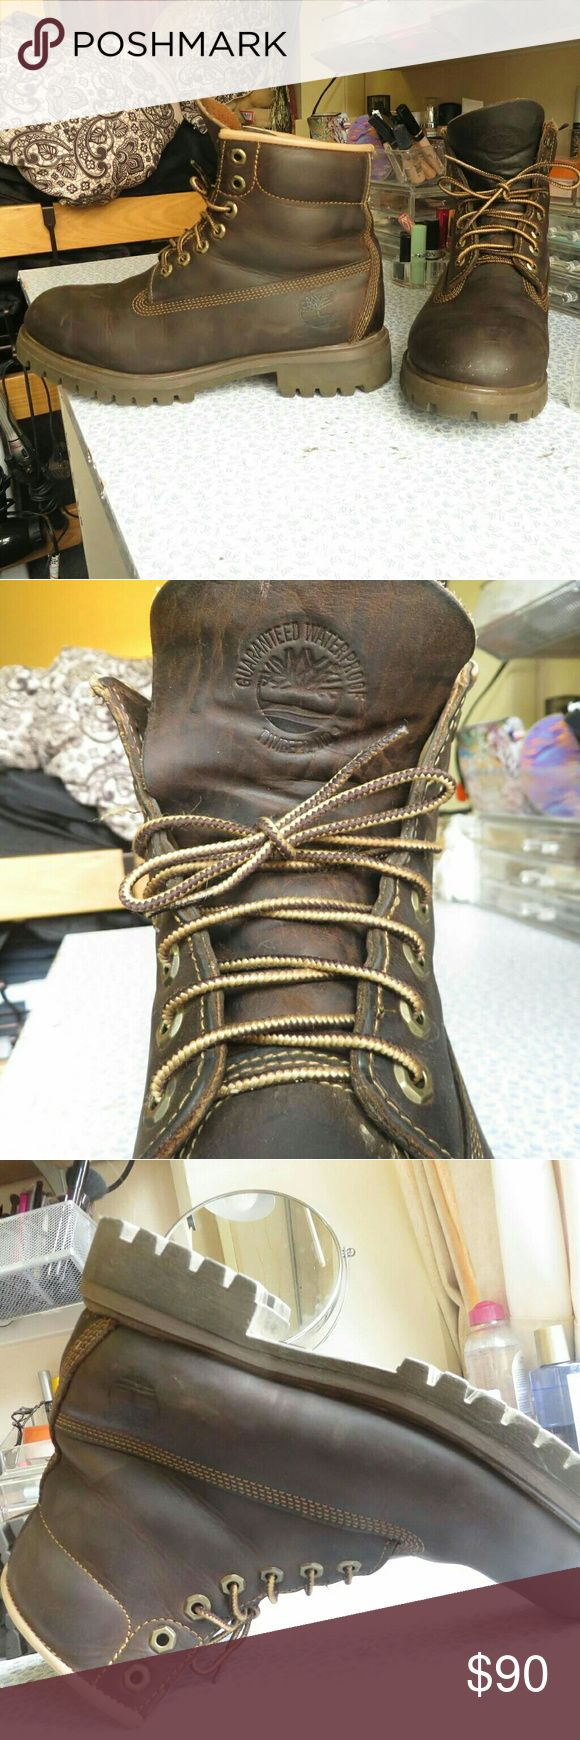 Excellent condition Timberland Boots Excellent used condition Timberland waterproof boots. I have taken great care of the leather, and it will last a long, long time for you! Reinforced stitching, metal eyelets, and the tread of the sole is in excellent condition as well. These boots are made to last! Handsome dark brown leather that goes well with any outfit. Size 8.5 mens, I am a size 9 in women's and I actually wore these with thick socks during the winter. I am downsizing my closet, and…